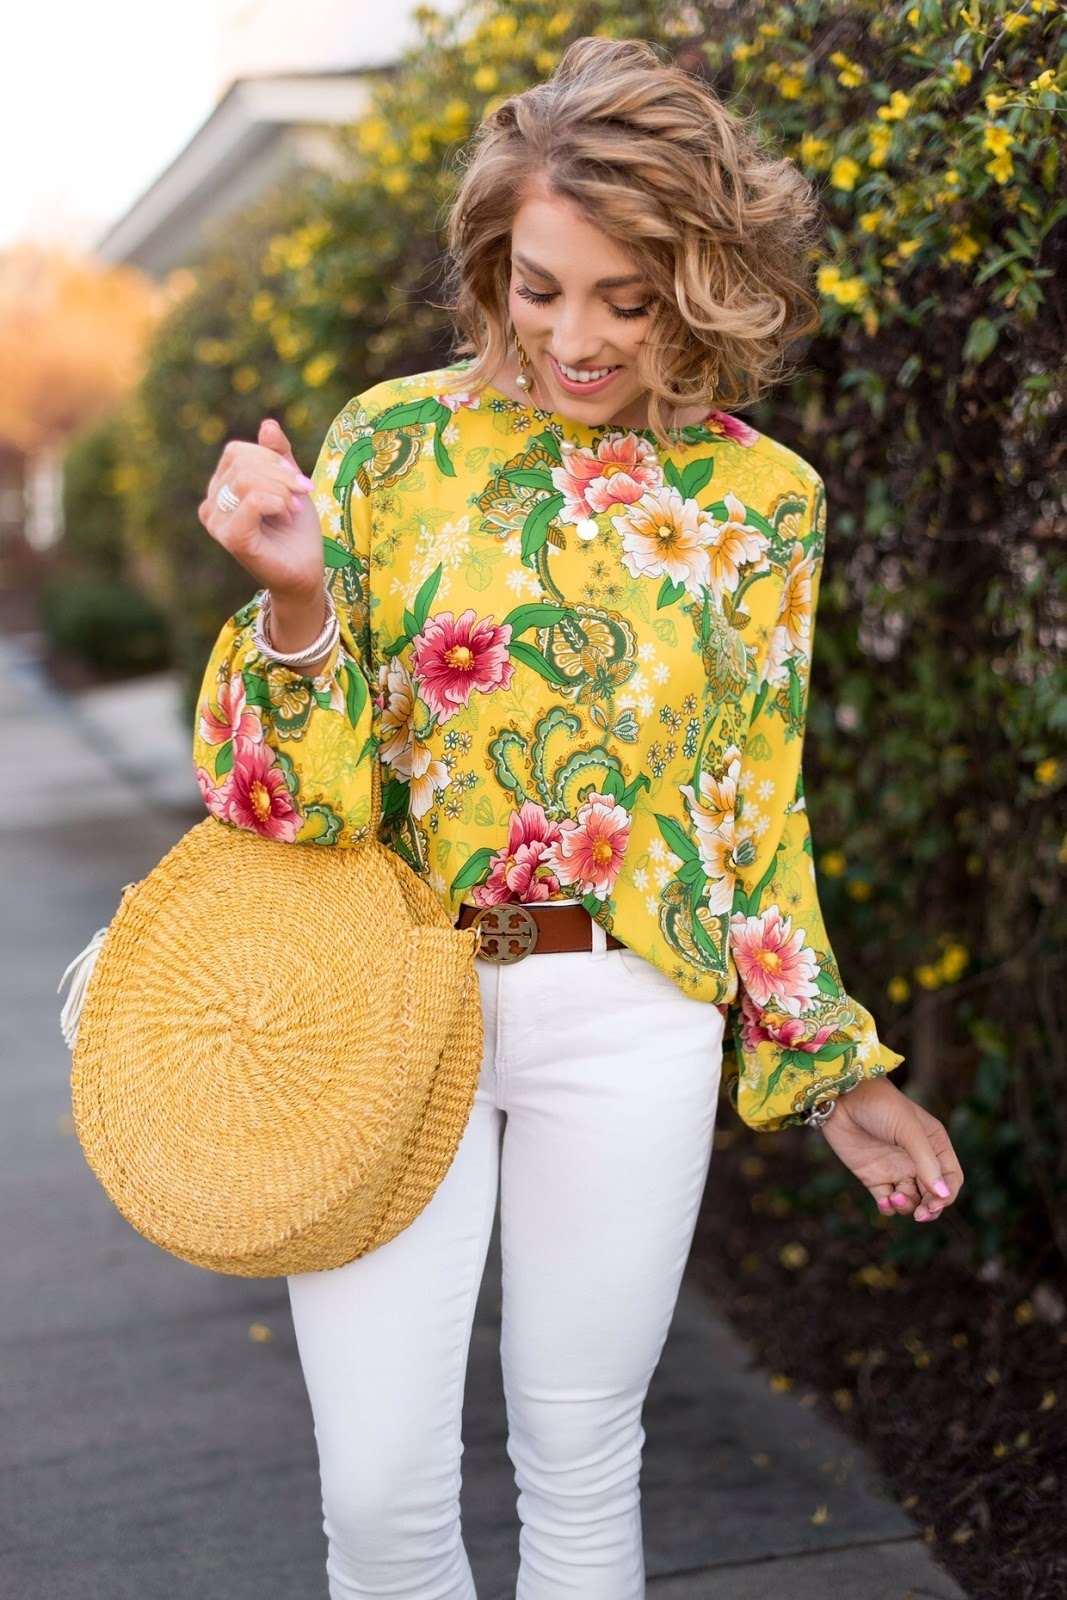 Yellow, Pink and White - My Favorite White Jeans - LOFT Friends and Family Sale - Something Delightful Blog